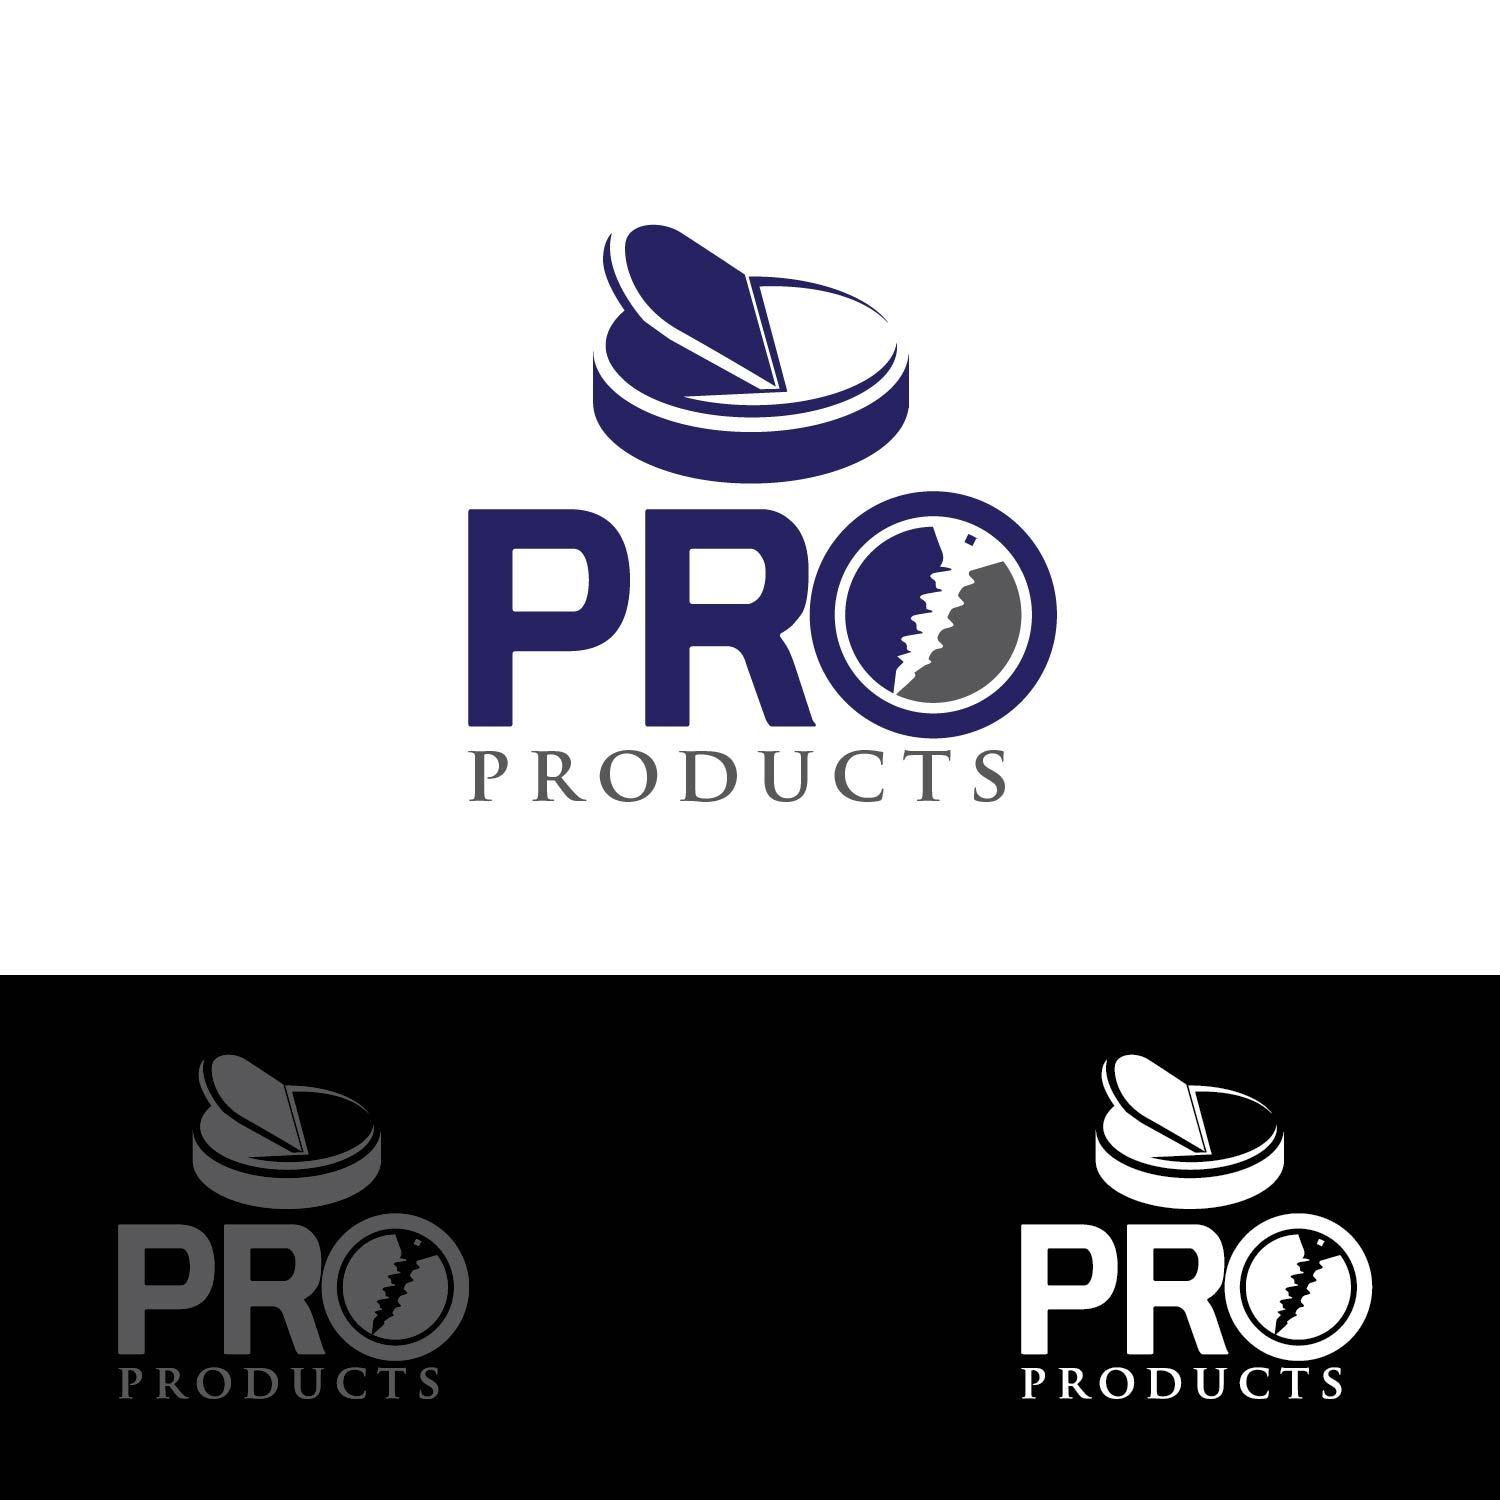 Logo Design by lagalag - Entry No. 19 in the Logo Design Contest Fun yet Professional Logo Design for ProProducts.